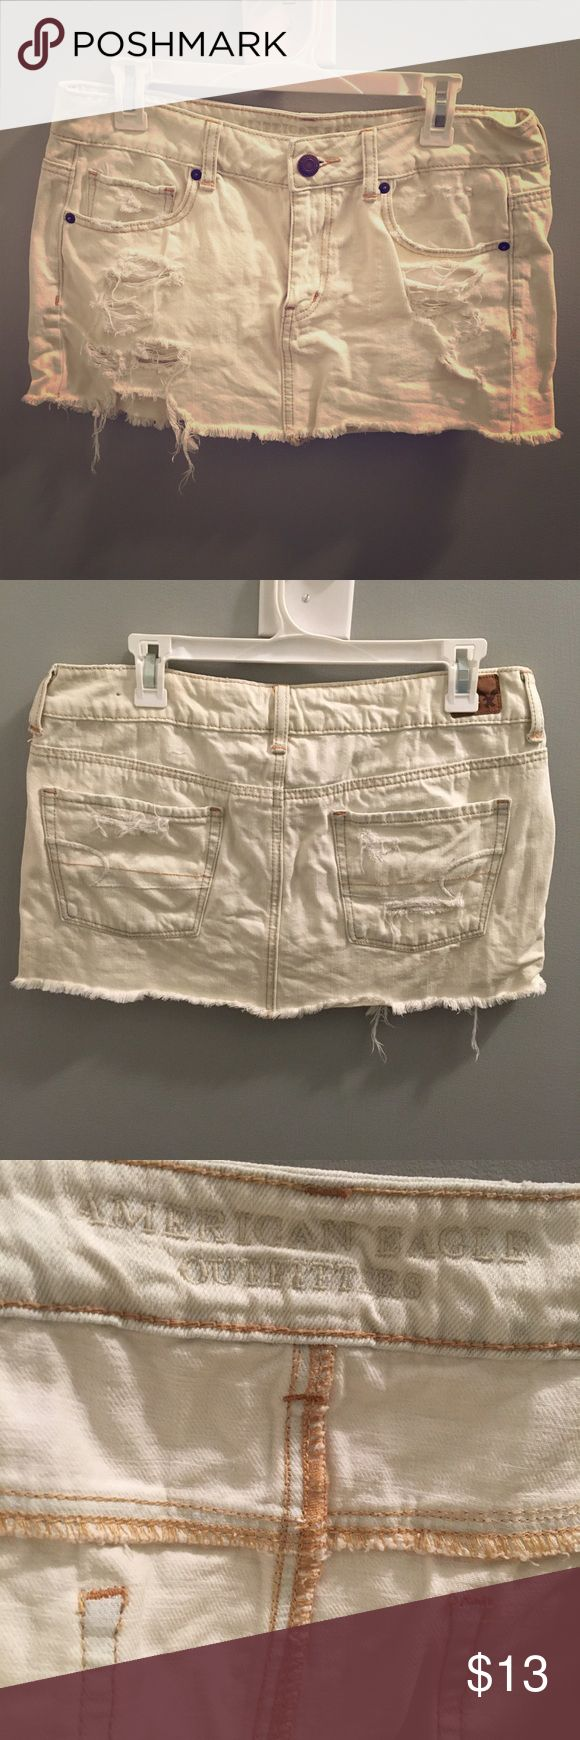 Distressed Denim American Eagle Mini Skirt Off white denim mini skirt with factory distressing! Super cute rips and holes! Adorable summer staple! A must have in any girl's closet!:) American Eagle Outfitters Skirts Mini